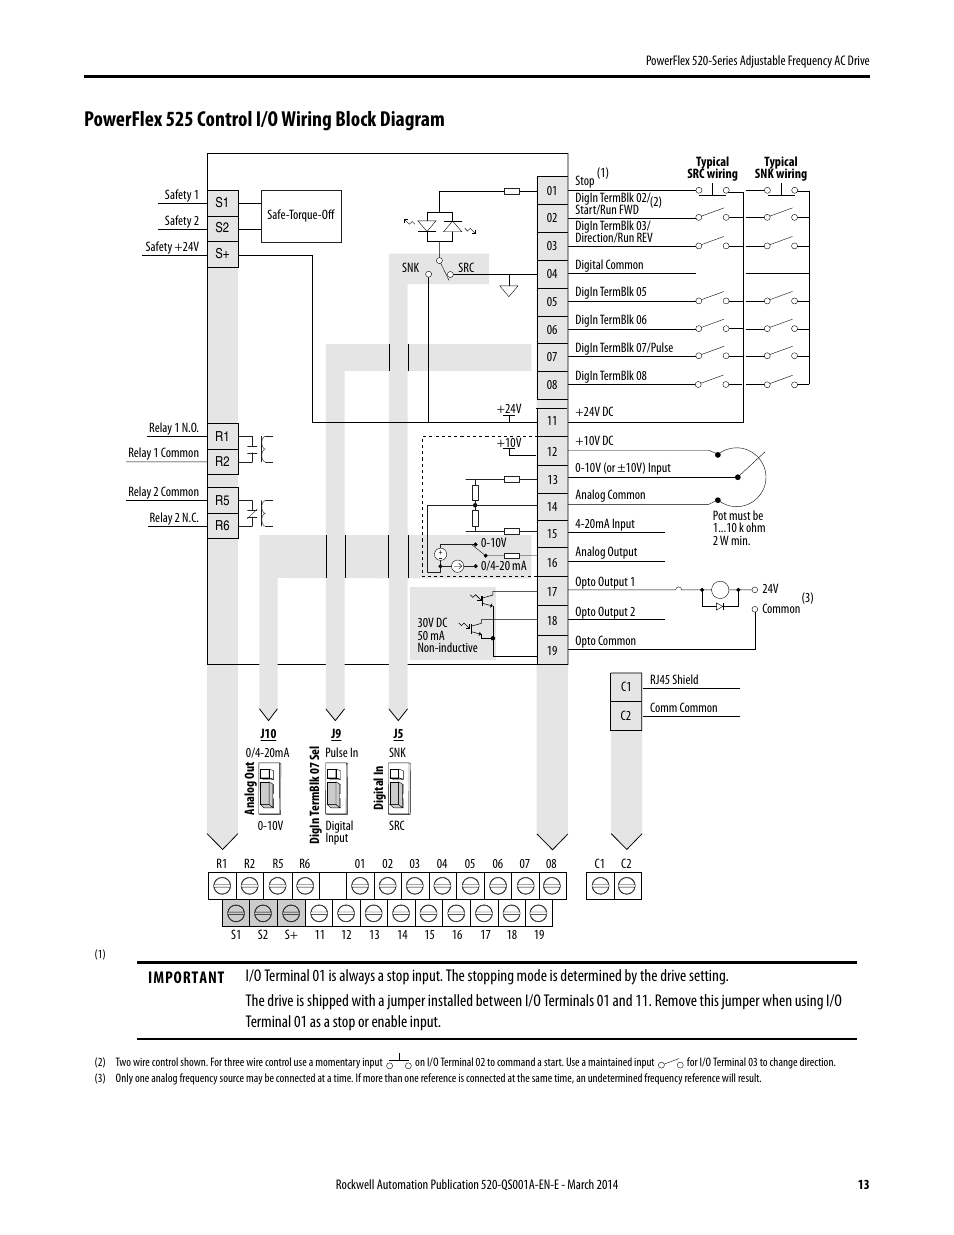 Powerflex 525 Control I O Wiring Block Diagram Rockwell Automation R6 25b 520 Series Adjustable Frequency Ac Drive Quick Start User Manual Page